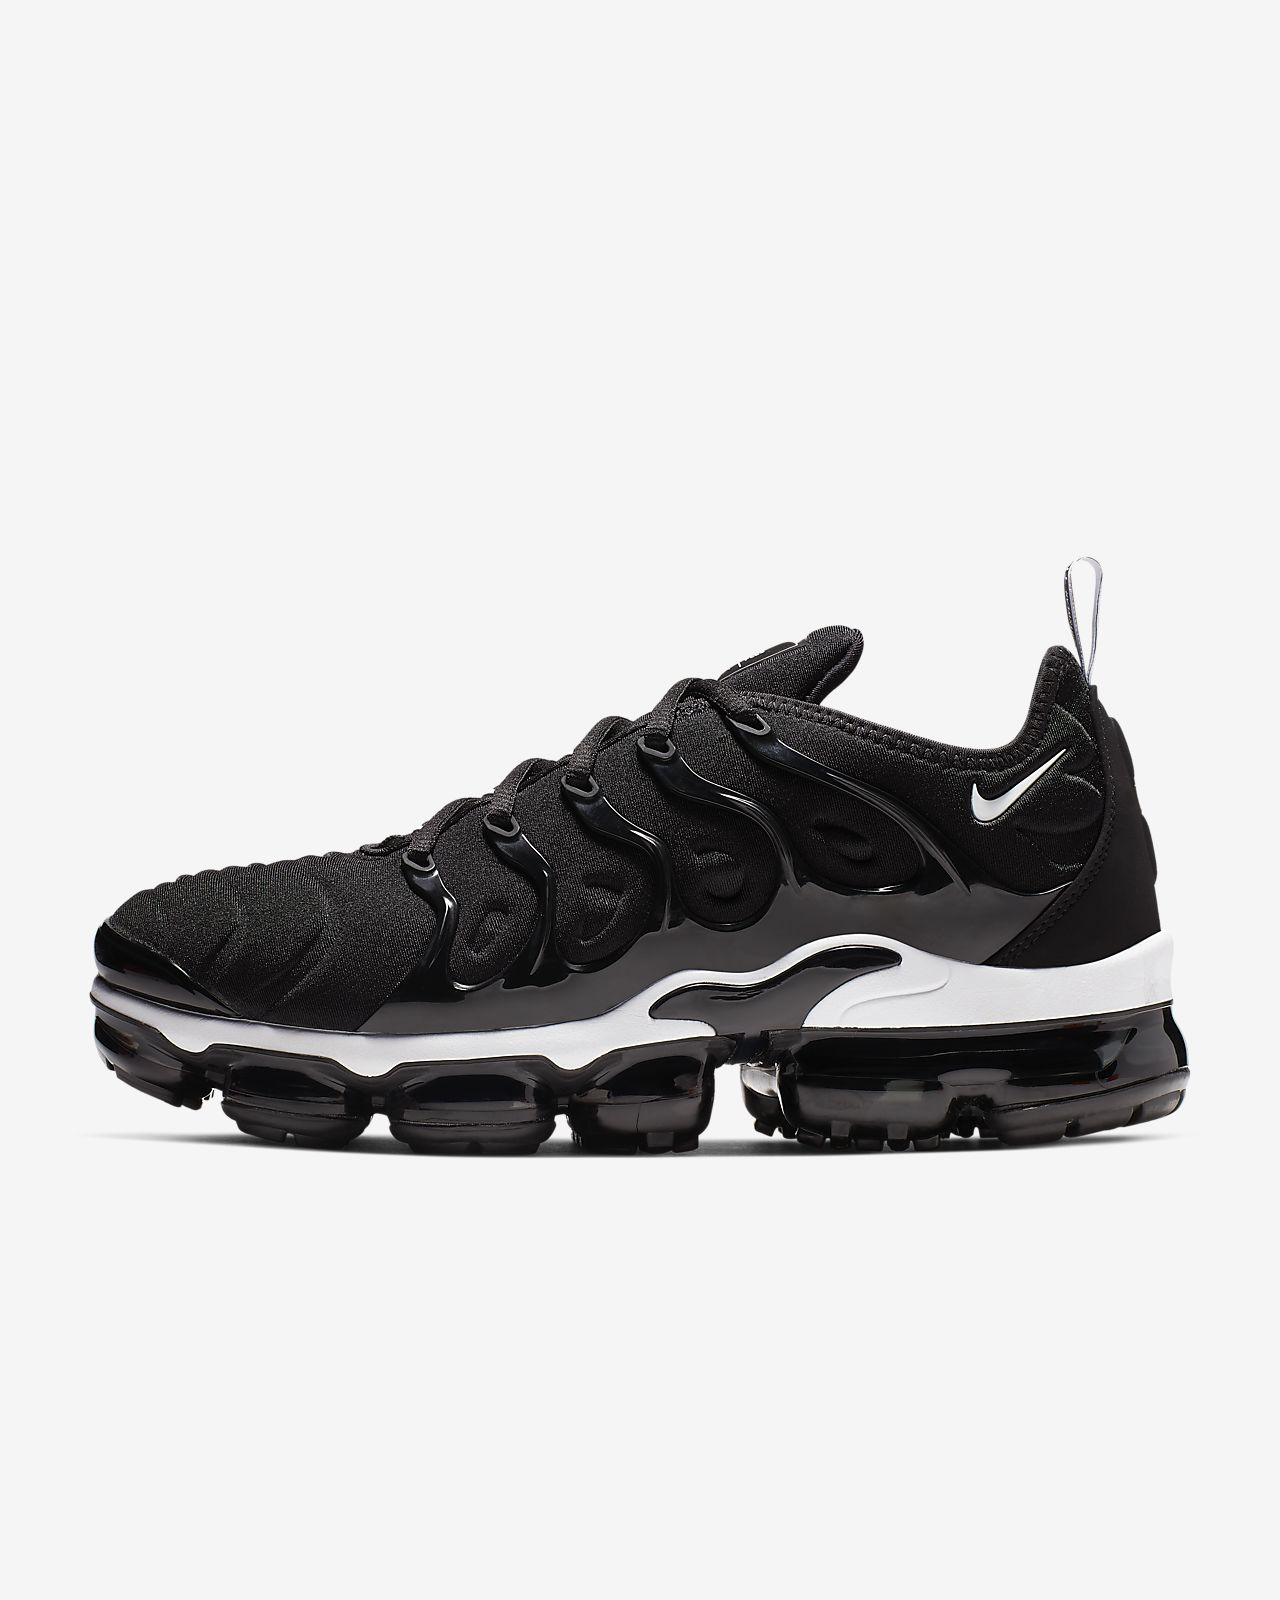 5eaab46b88cb Nike Air VaporMax Plus Men s Shoe. Nike.com CA